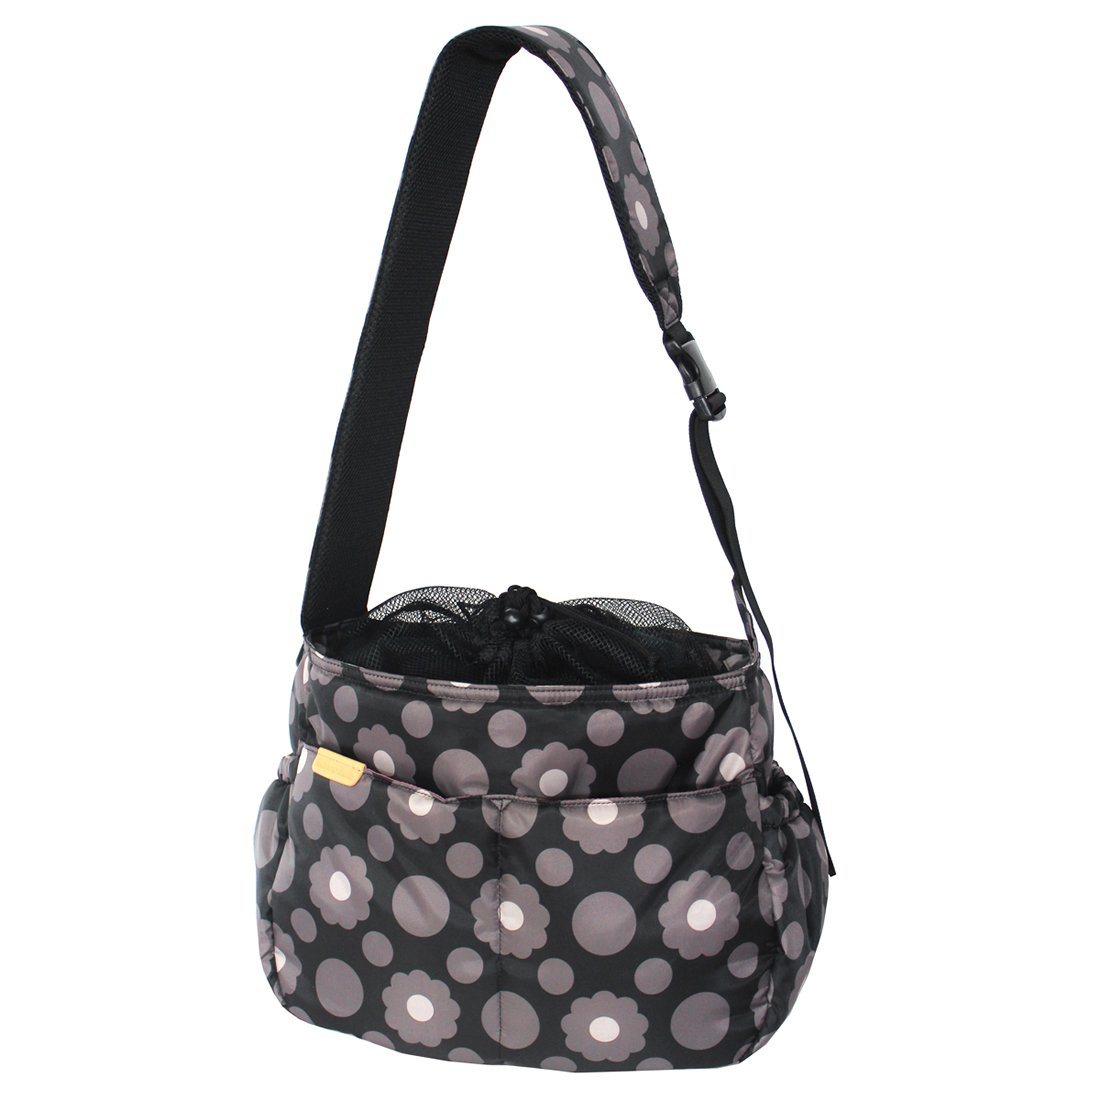 HALKARIN'S Co,Ltd. Soft Sided Pet Carrier for Dogs, Cats and Puppies, Lightweight, Size  W 14.43 x H 11.7 x D 7.02 inch, Cookie Flower café